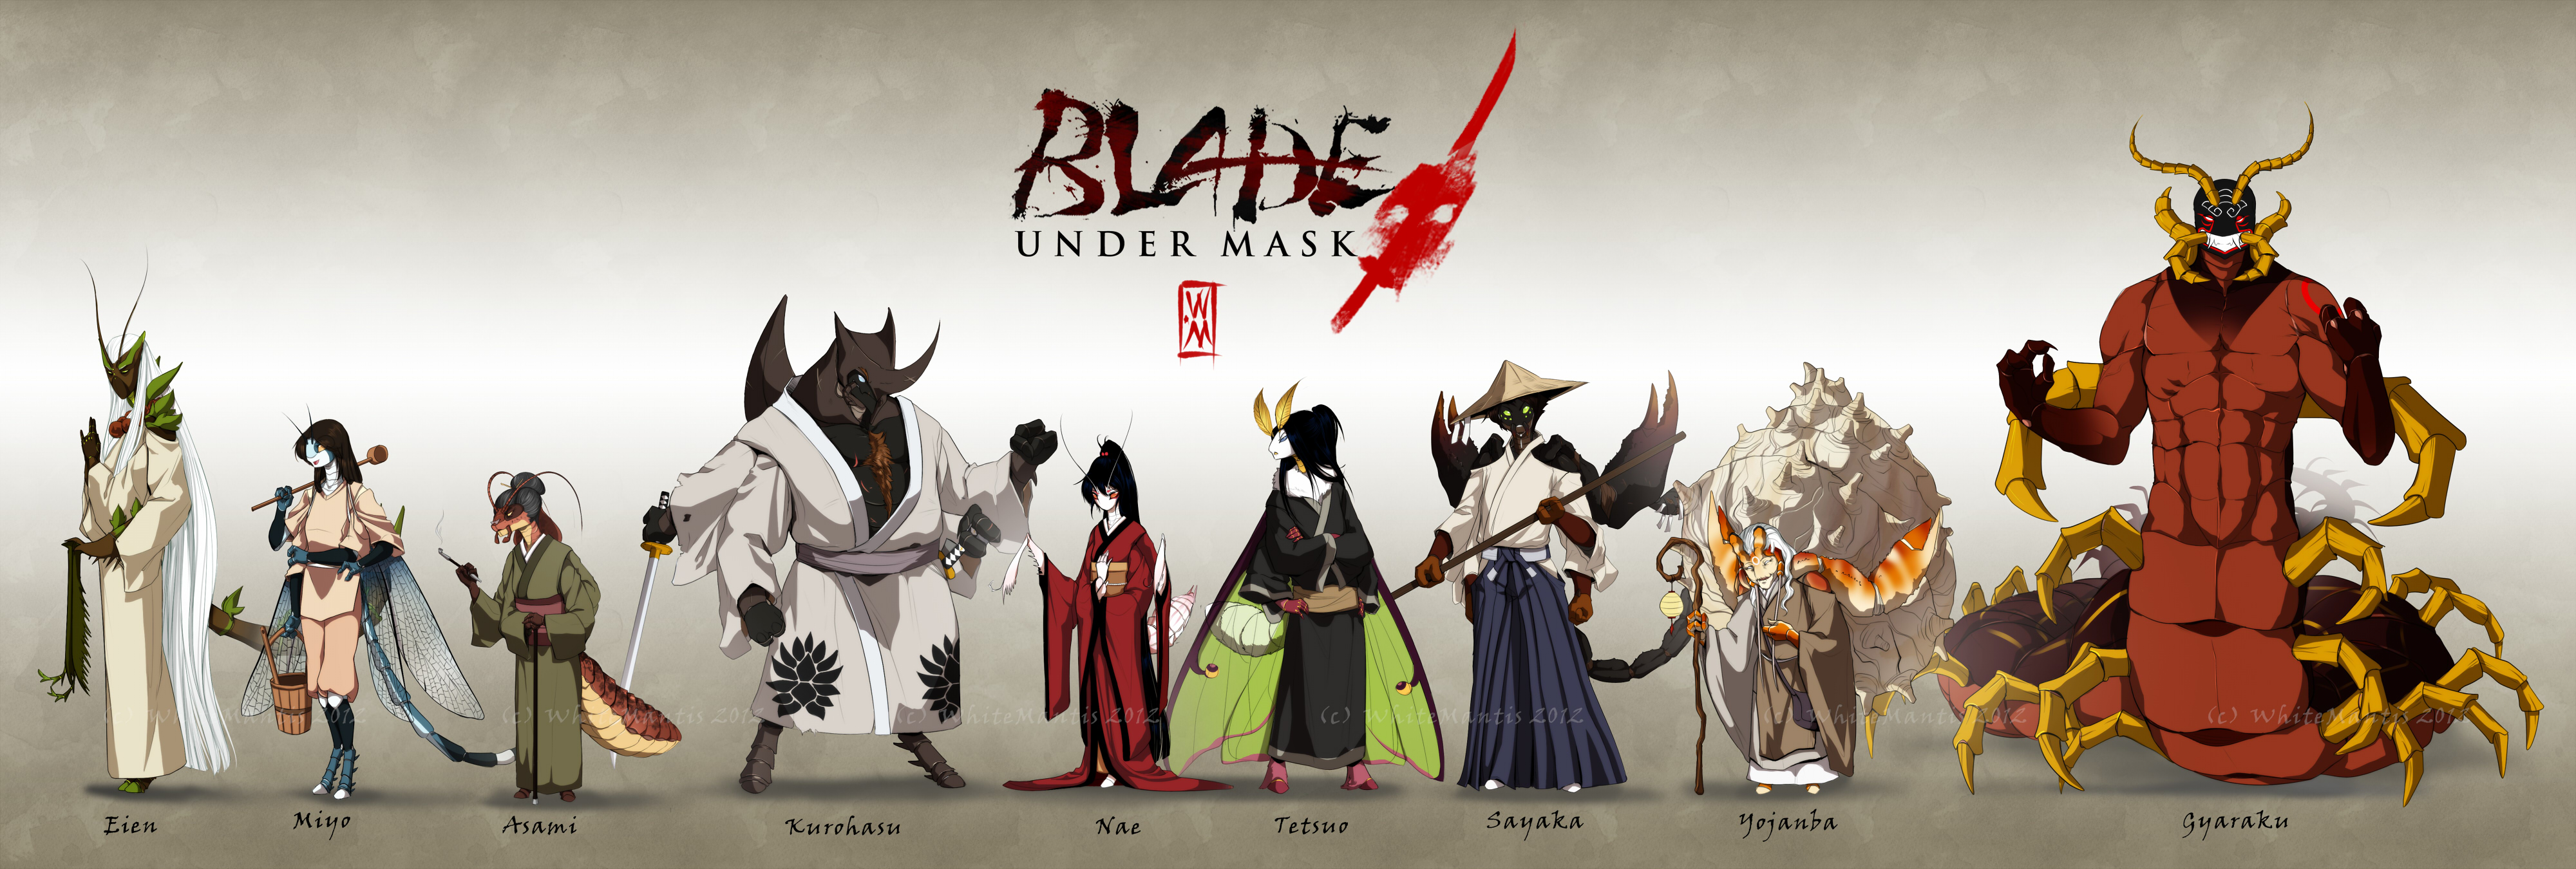 Blade Under Mask: Character Lineup by White-Mantis